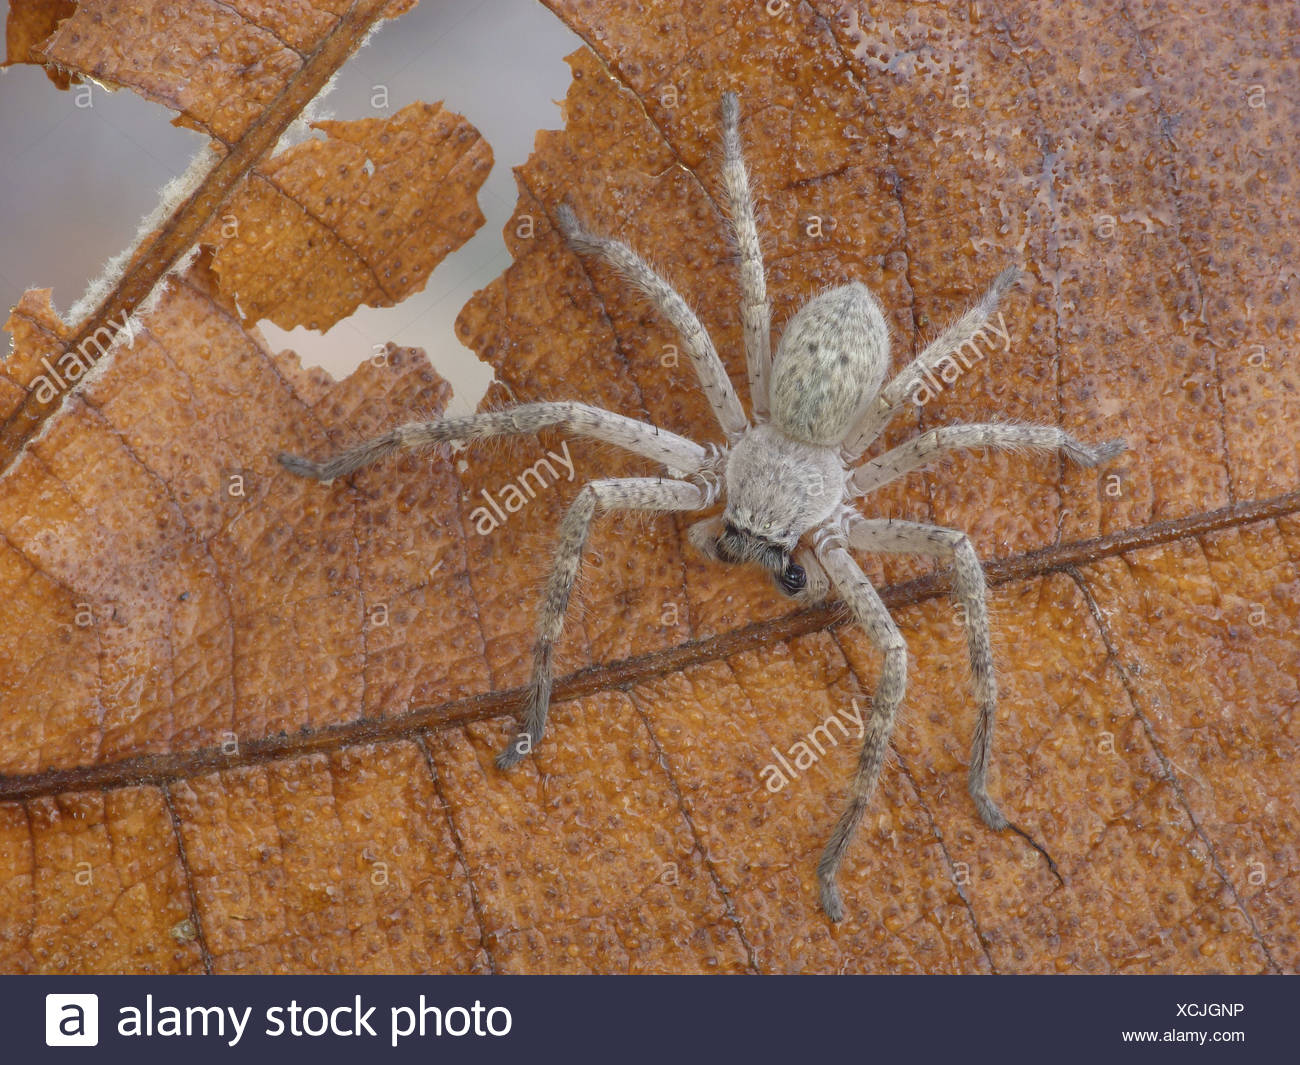 Mountain Huntsman Spider (Isopeda montana) young instar